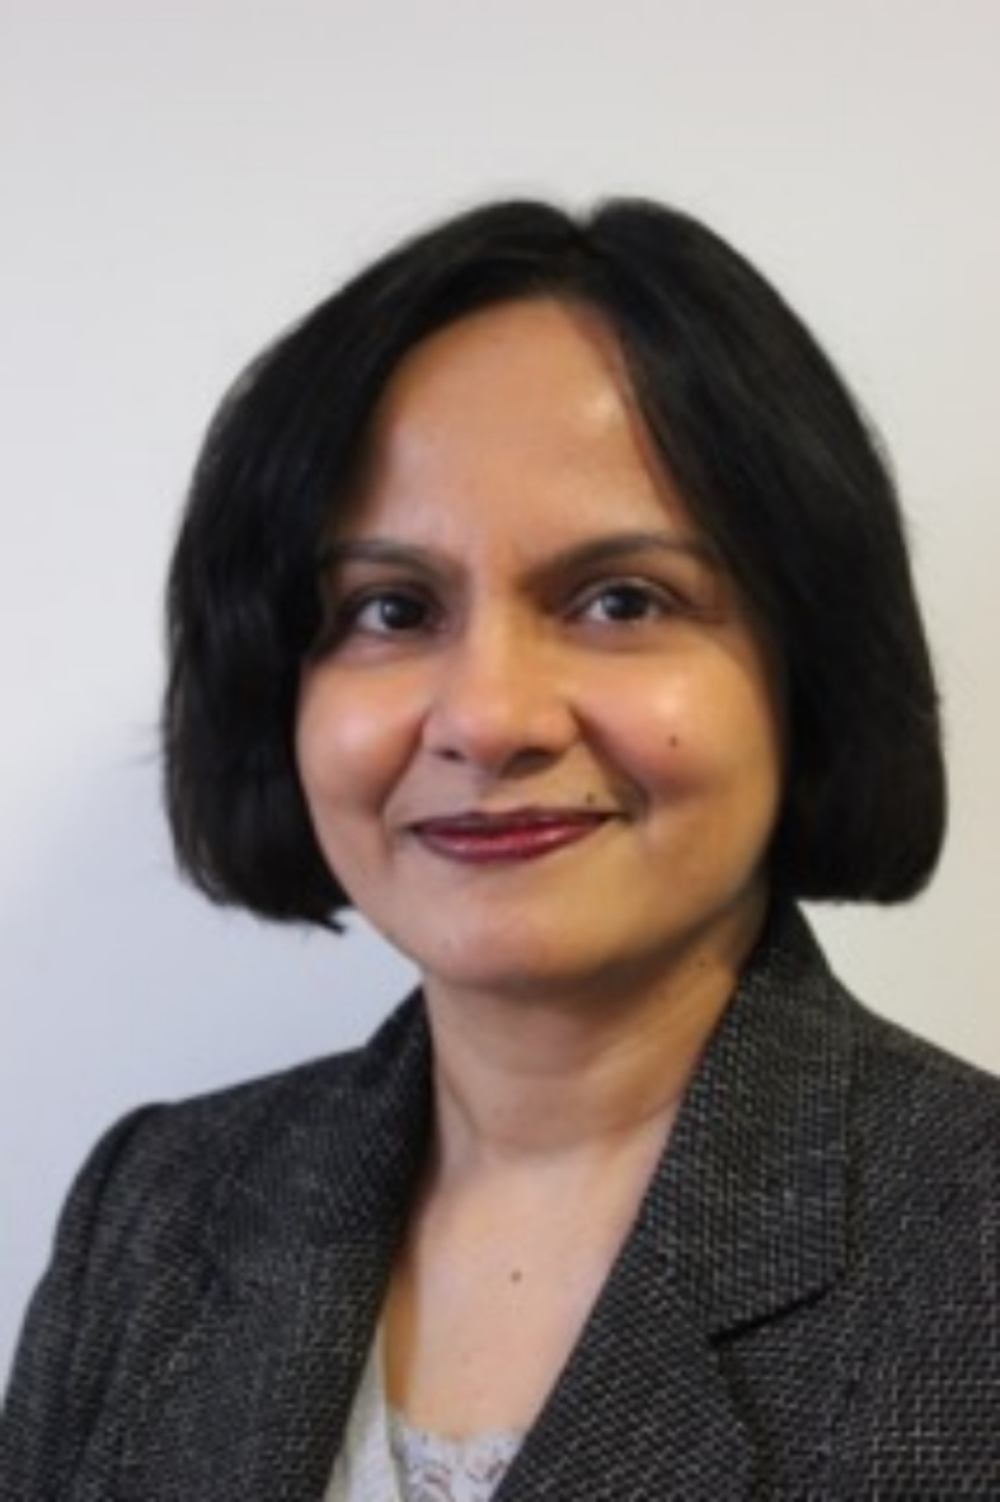 Dr Rema Jyothirmayl MBBS DipNB MD FRCP FRCR MA Consultant Clinical Oncologist Maidstone and Tunbridge Wells NHS Trust